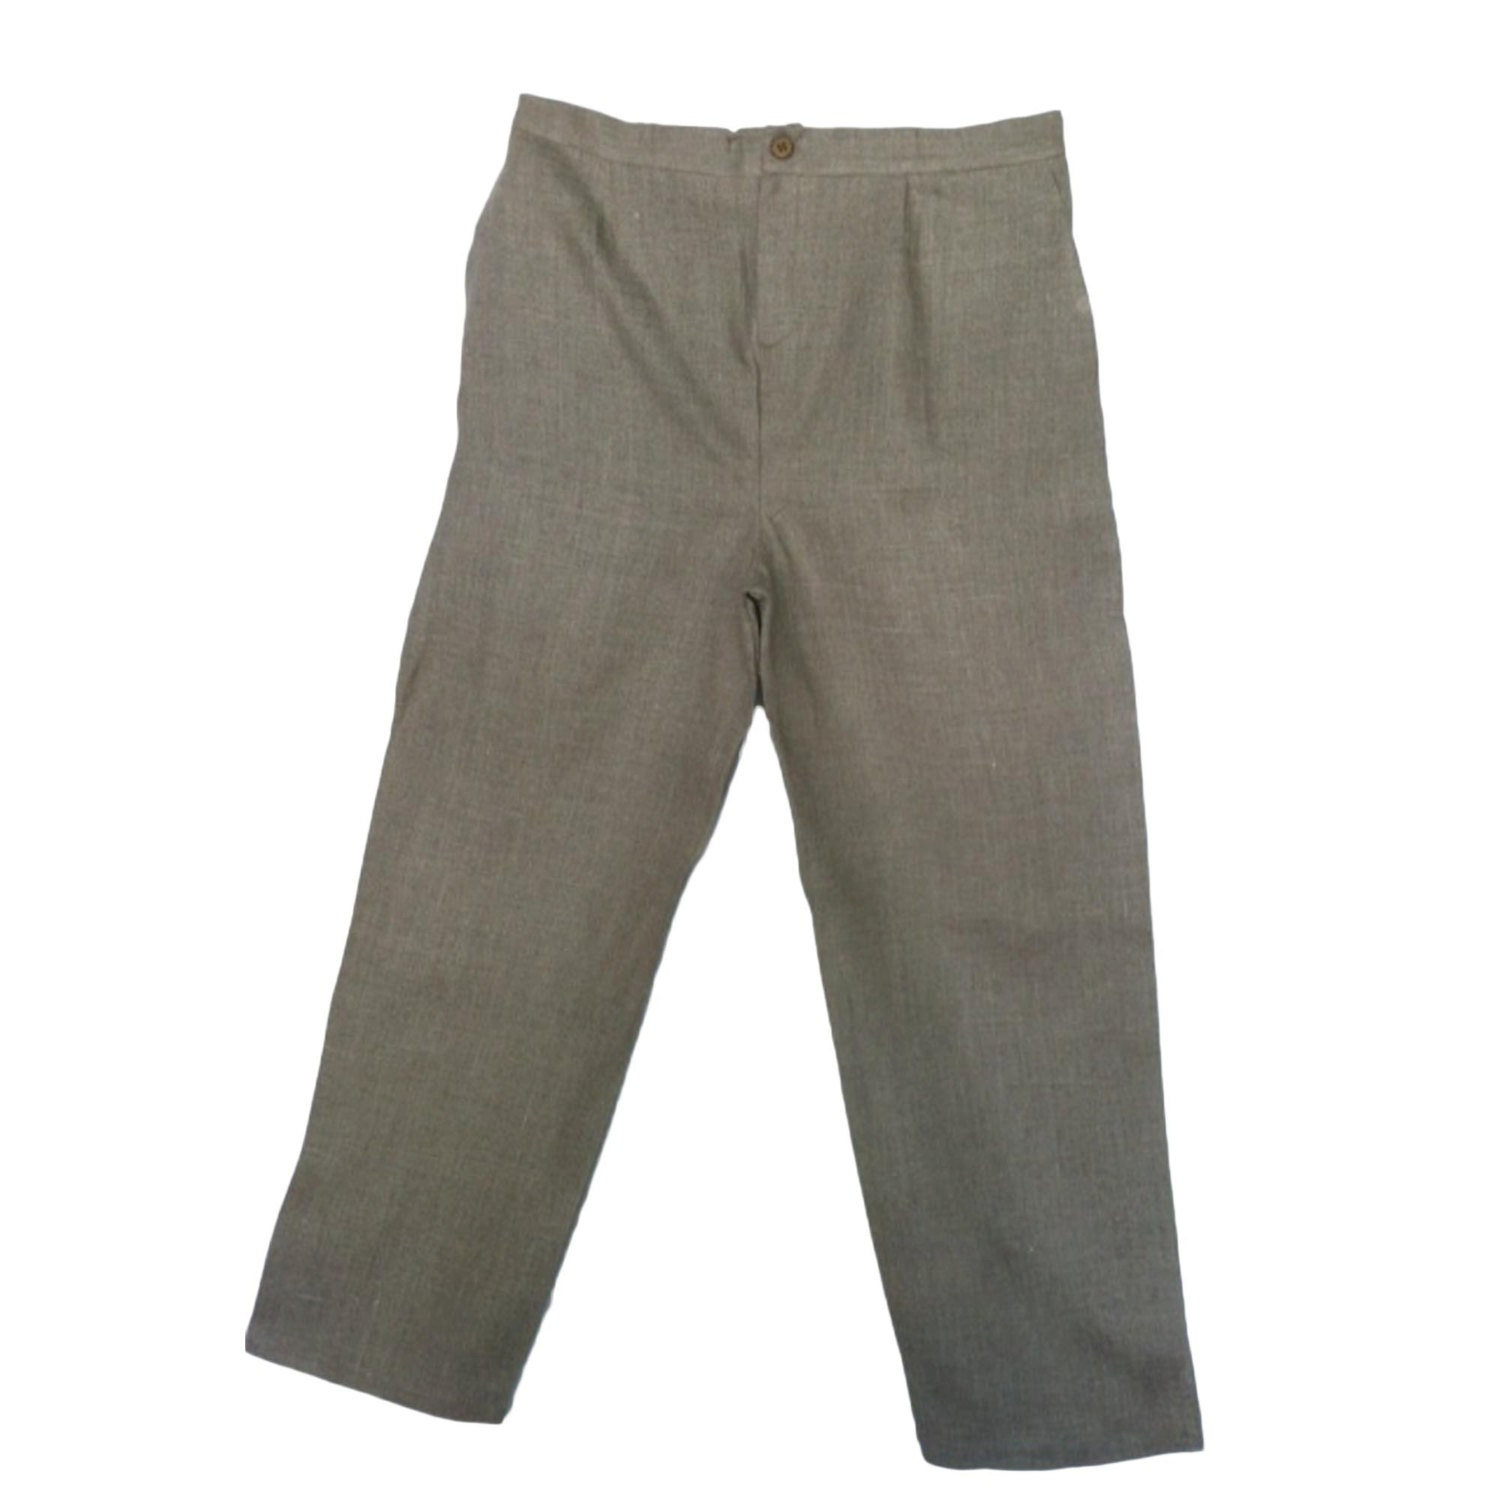 Little Boys Dress Pants. Cotton/Linen blend. Navy blue in color. Slide and zip front. In excellent condition with no holes or stains.